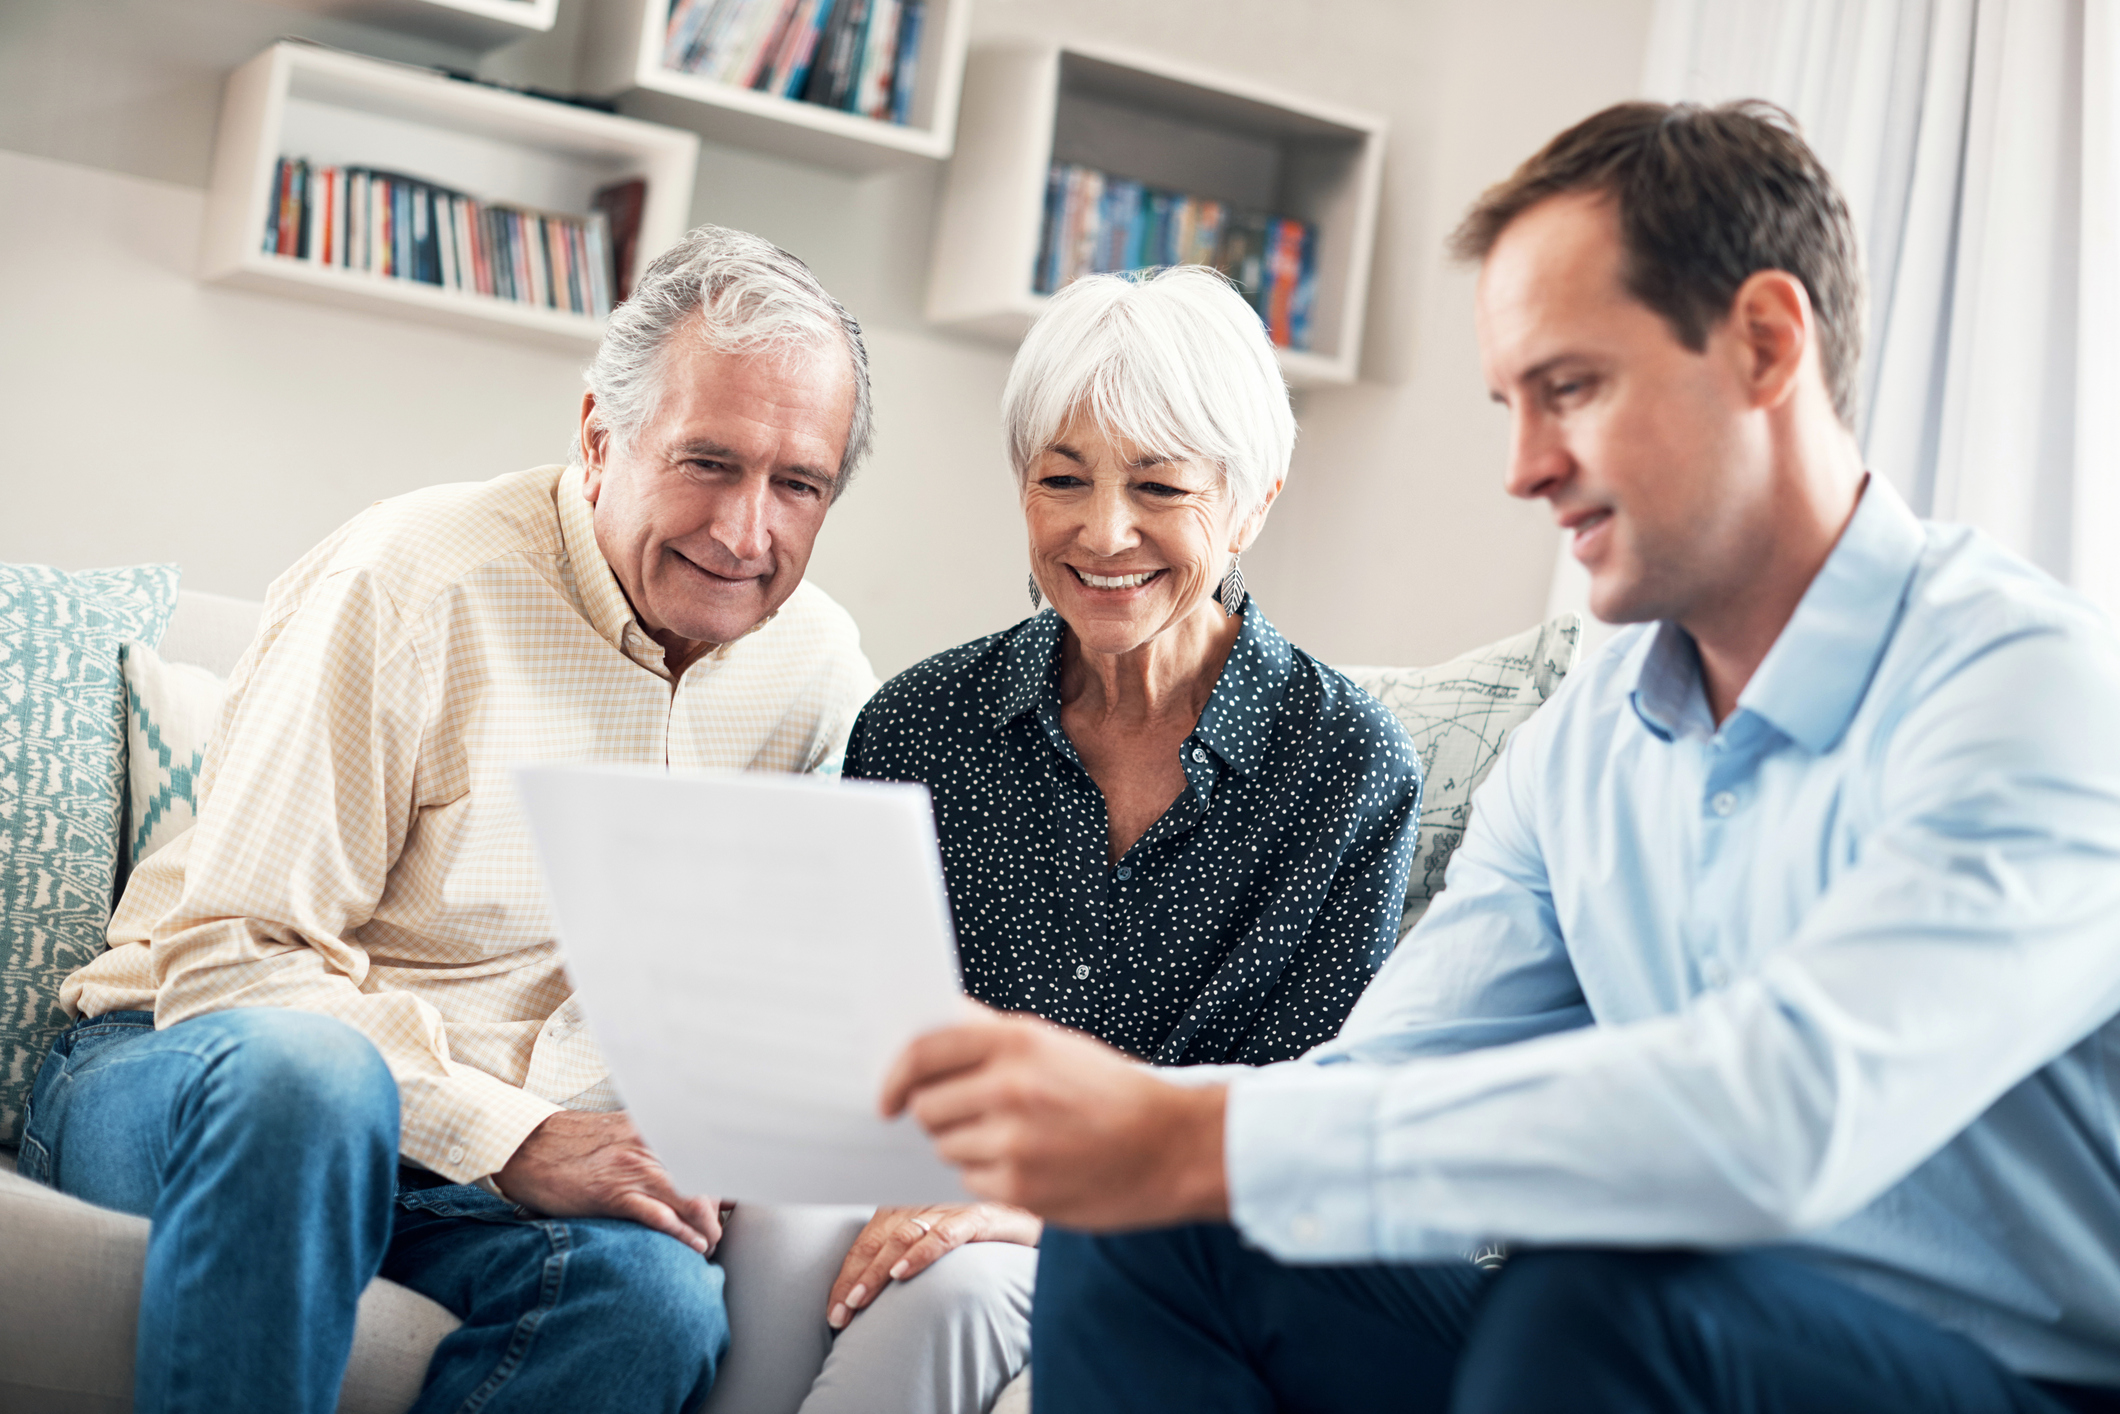 an older couple smiling looking at realtor's paper while they are thinking about buying condos for sale in Bradenton, Florida